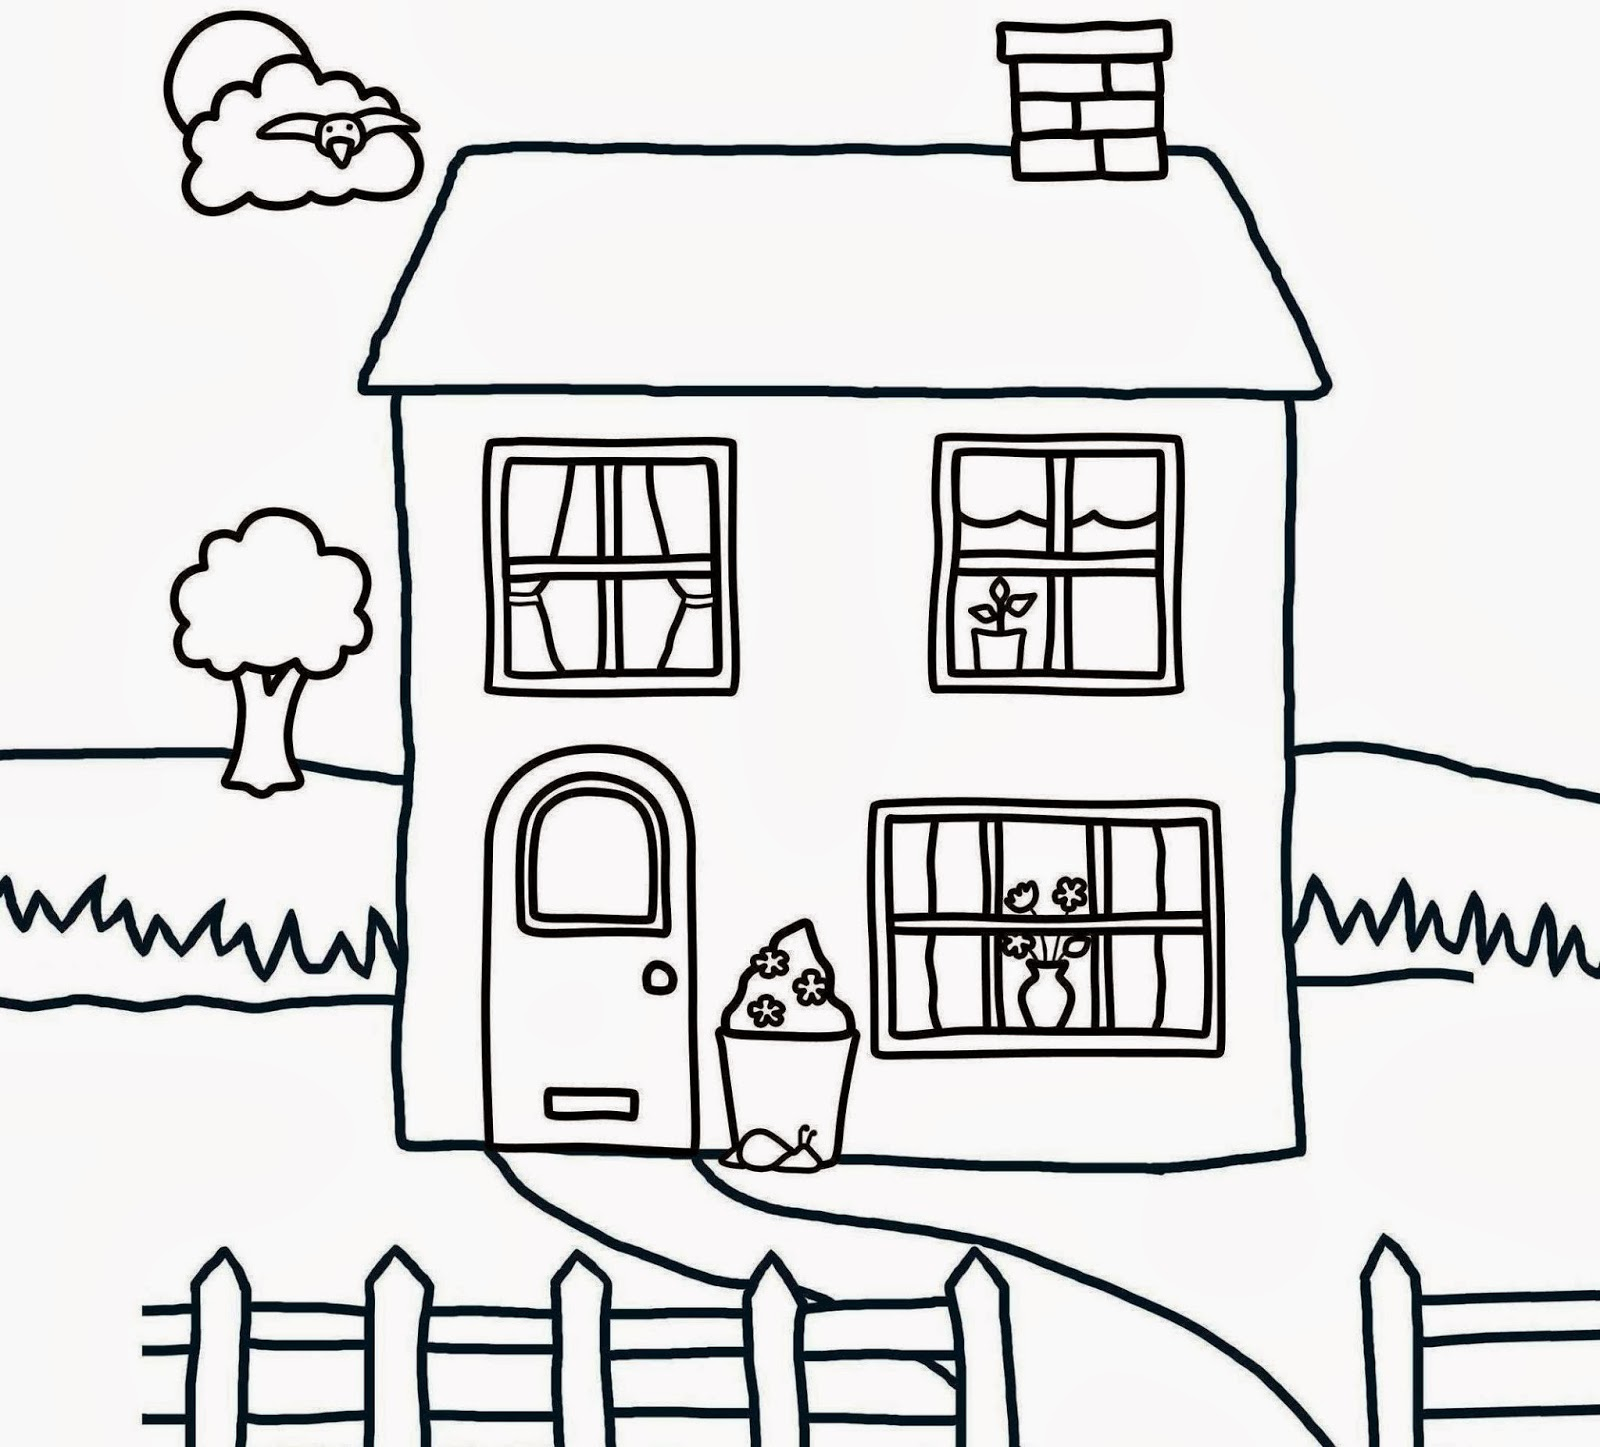 Colour Drawing Free Wallpaper Small House For Kid Coloring Drawing Free Wallpaper